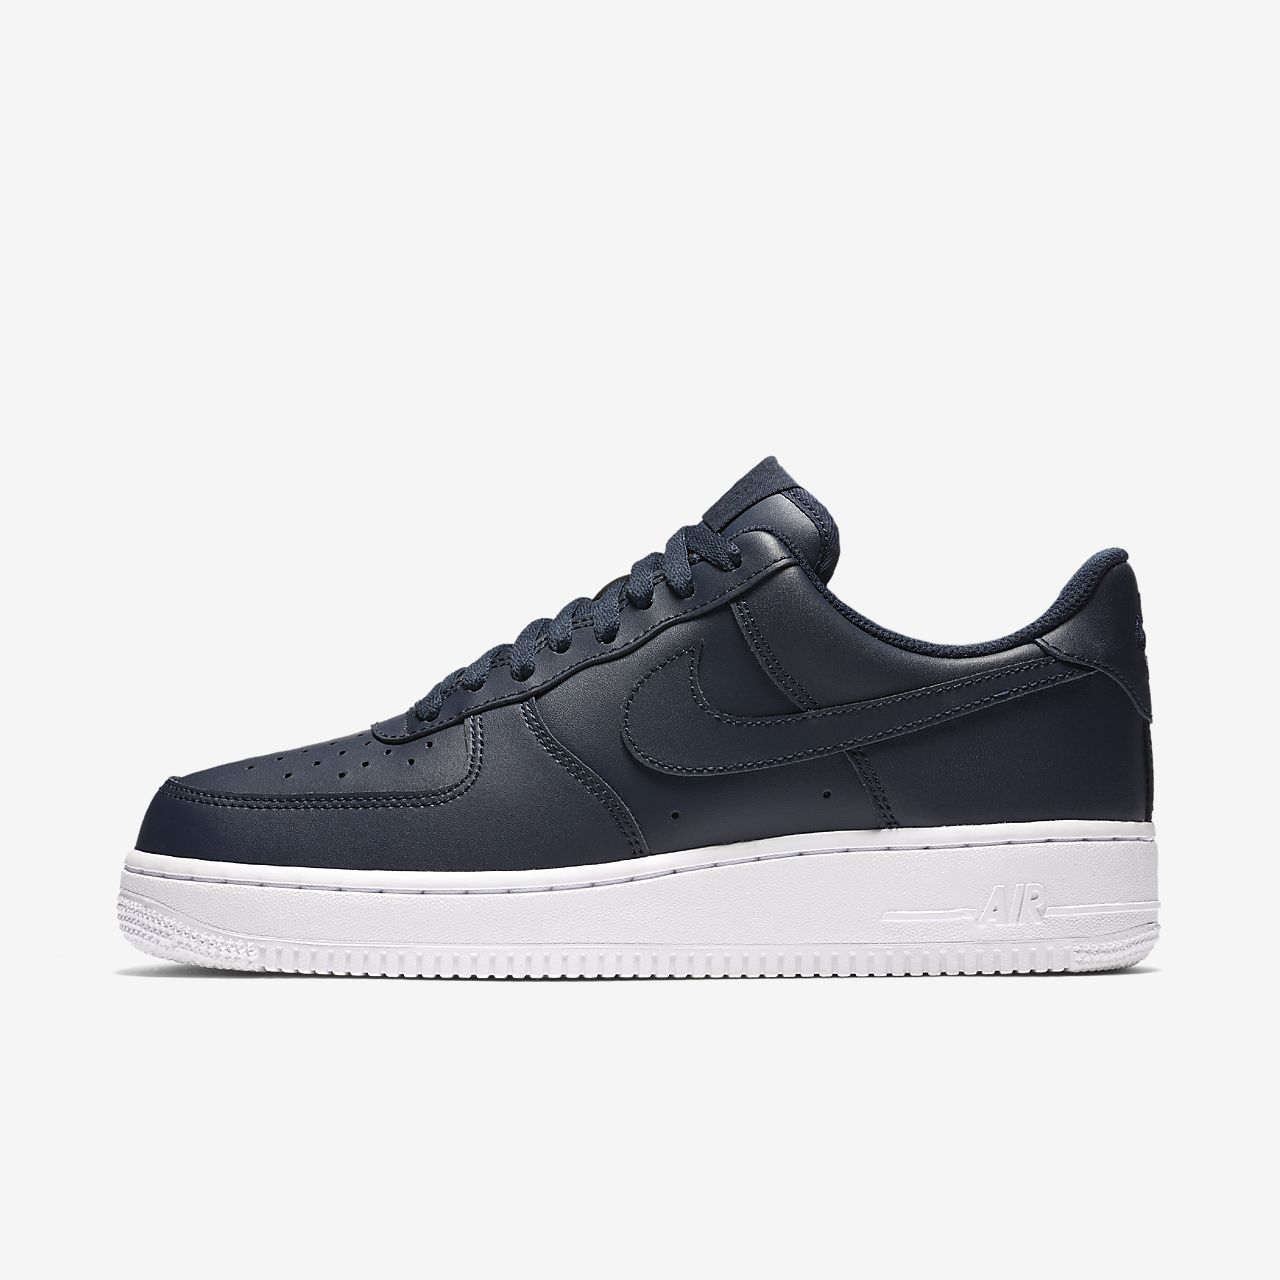 hot sale online 6a82d c46b3 ... Nike Air Force 1 07 Men s Shoe